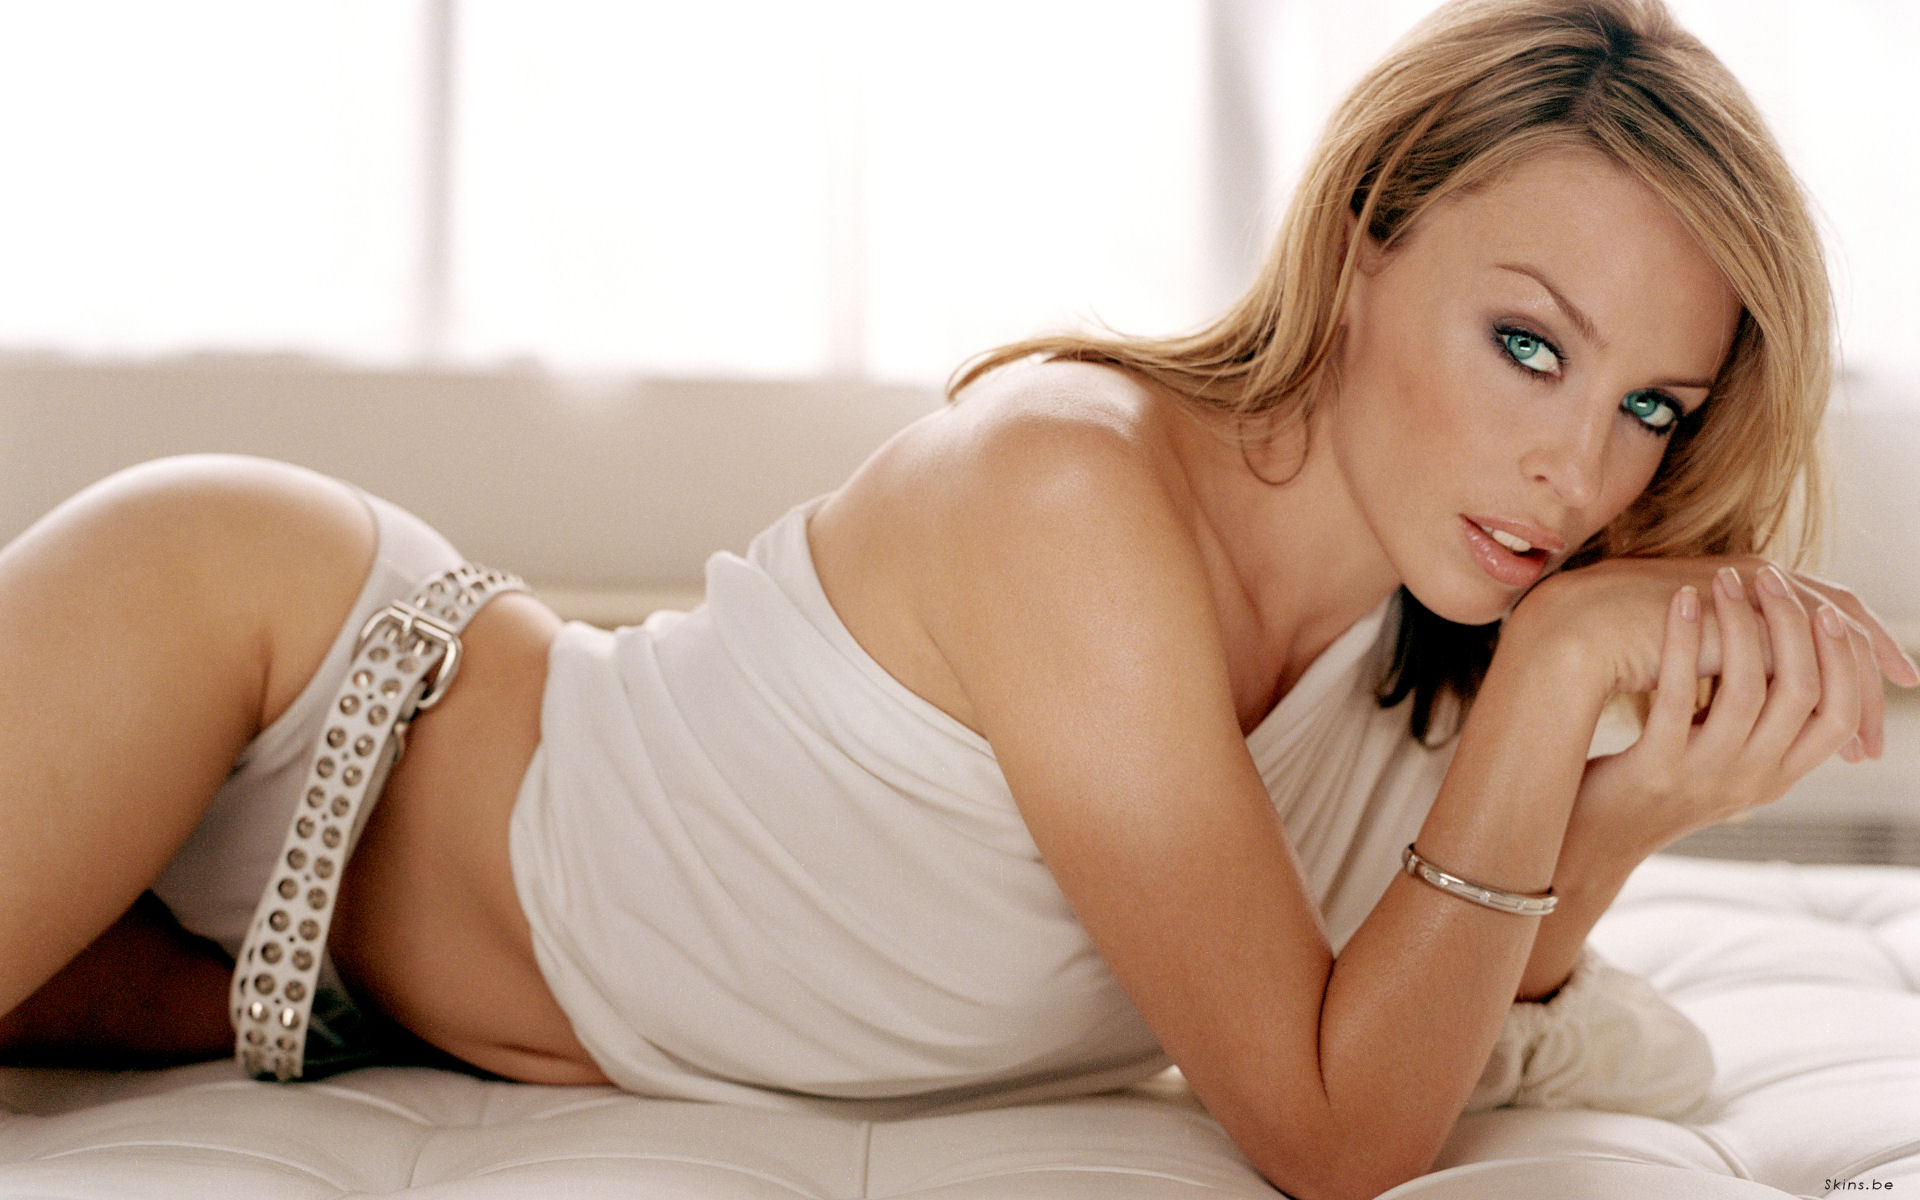 Kyllie Minogue Backgrounds on Wallpapers Vista